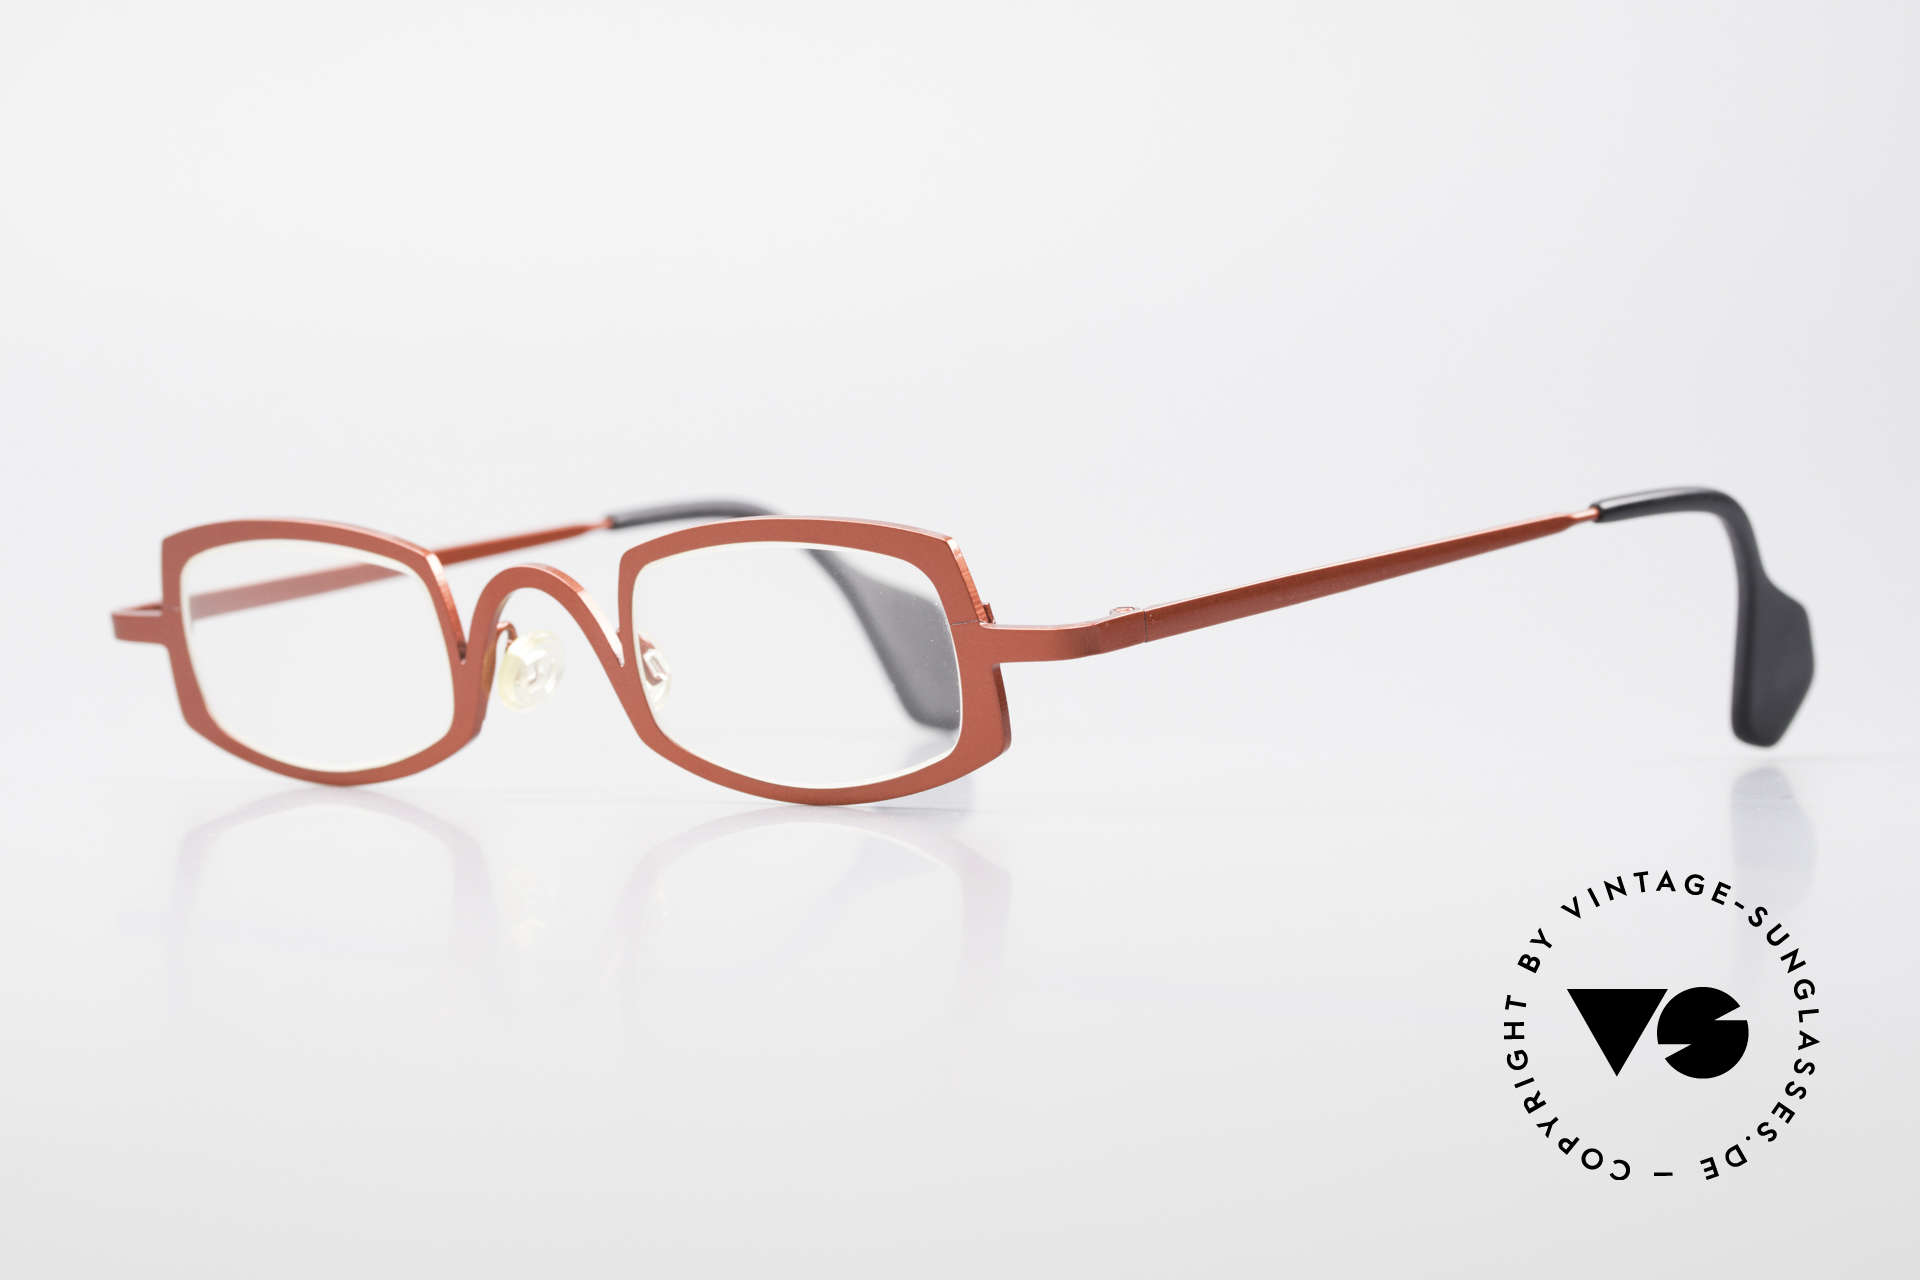 Theo Belgium Rectangle Red Vintage Ladies Eyeglasses, made for the avant-garde, individualists & trend-setters, Made for Women